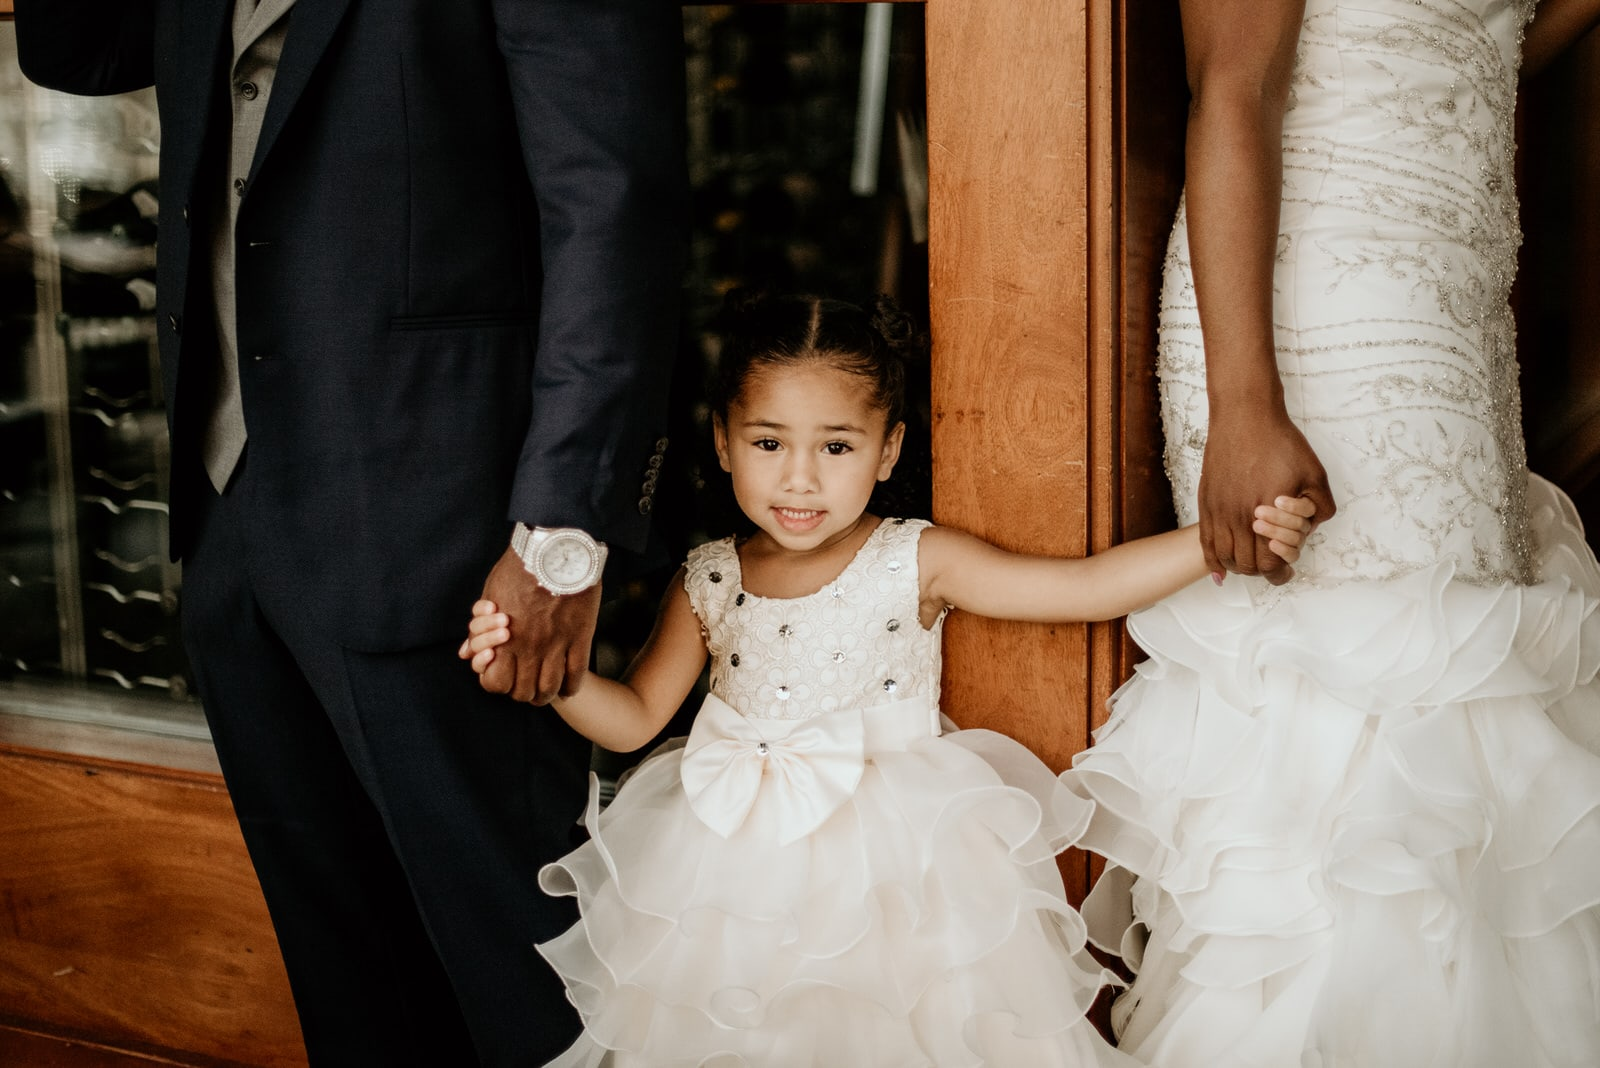 Bride and groom with daughter in between prior to first look